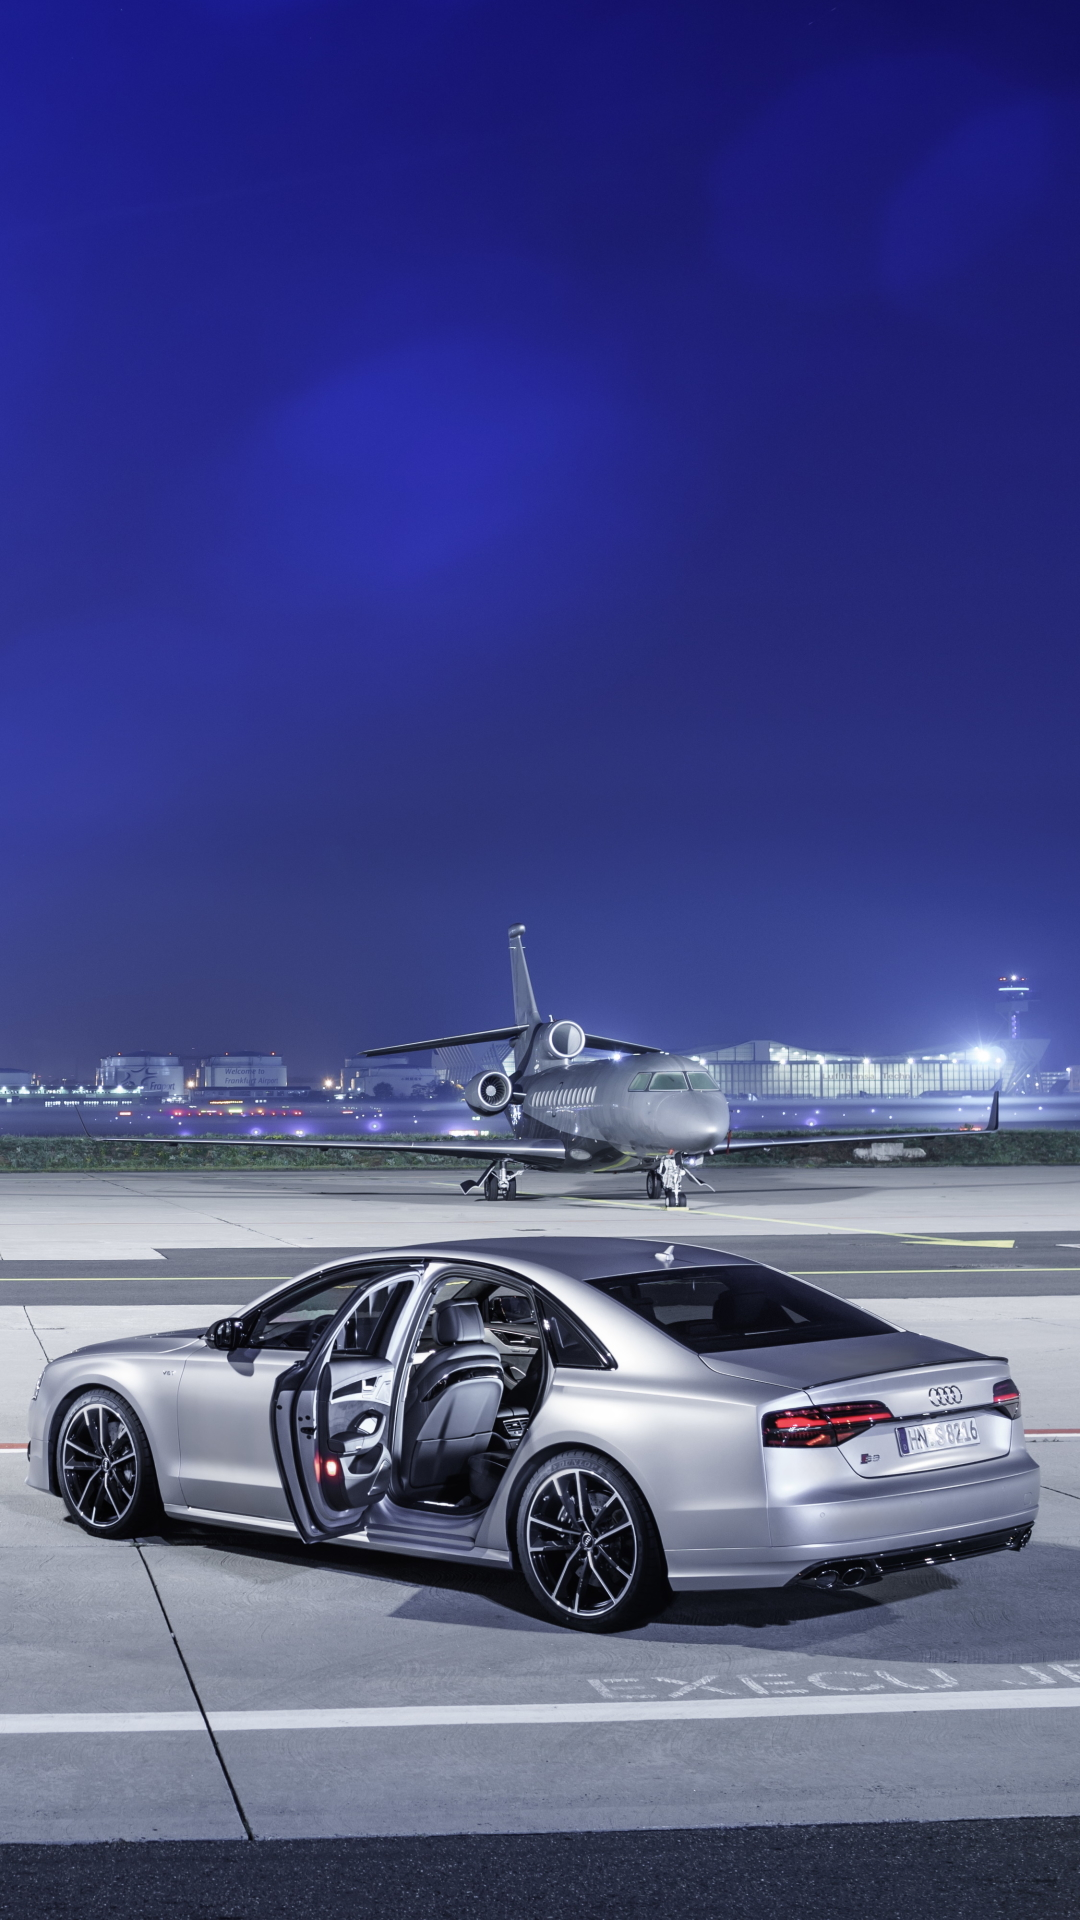 Vehicles Audi S8 1080x1920 Wallpaper ID 614333